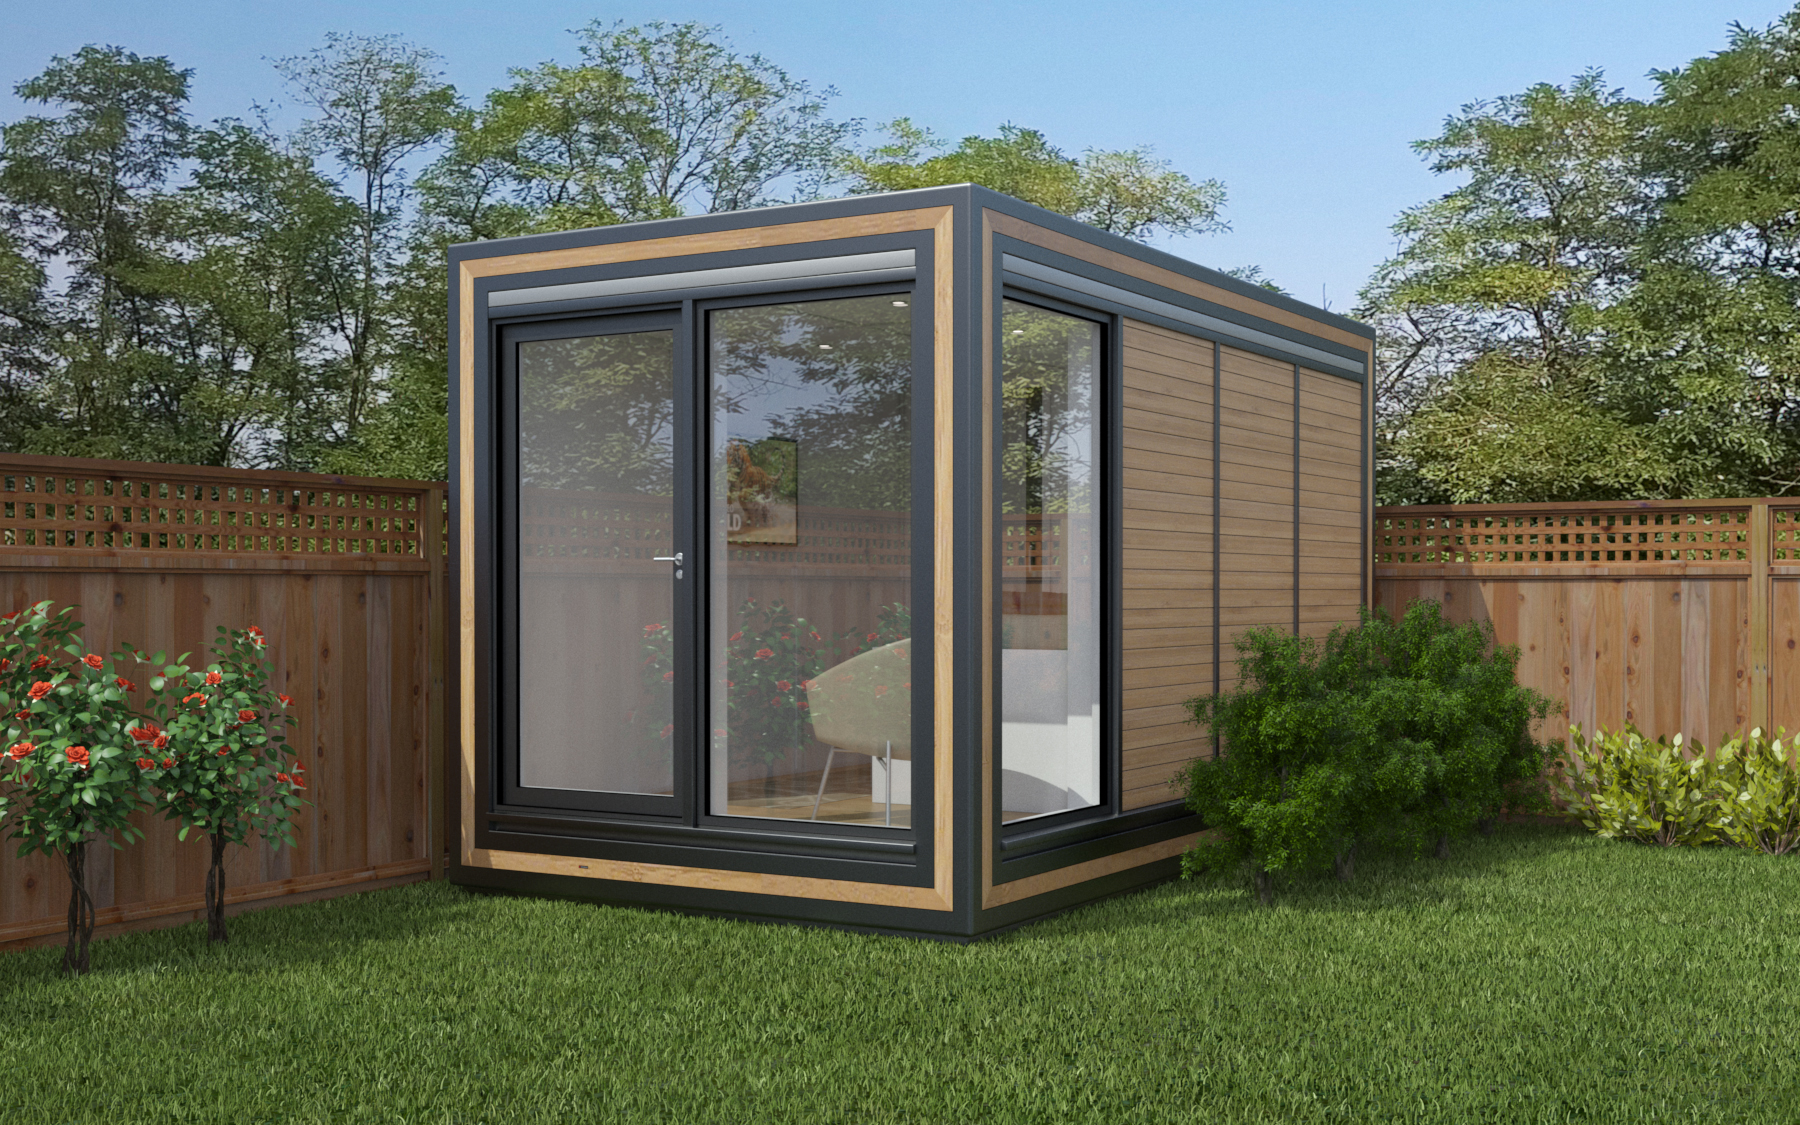 ZEDBOX 240  (2 x 4)  Internal Size: 2117x 4259  External Size: 2587 x 4279  Bed Options: Single  Kitchen Options: N/A  Wet Room Options: Yes  Portico: No  Price:  £19,000    Optional Extras    Request Zedbox Catalogue